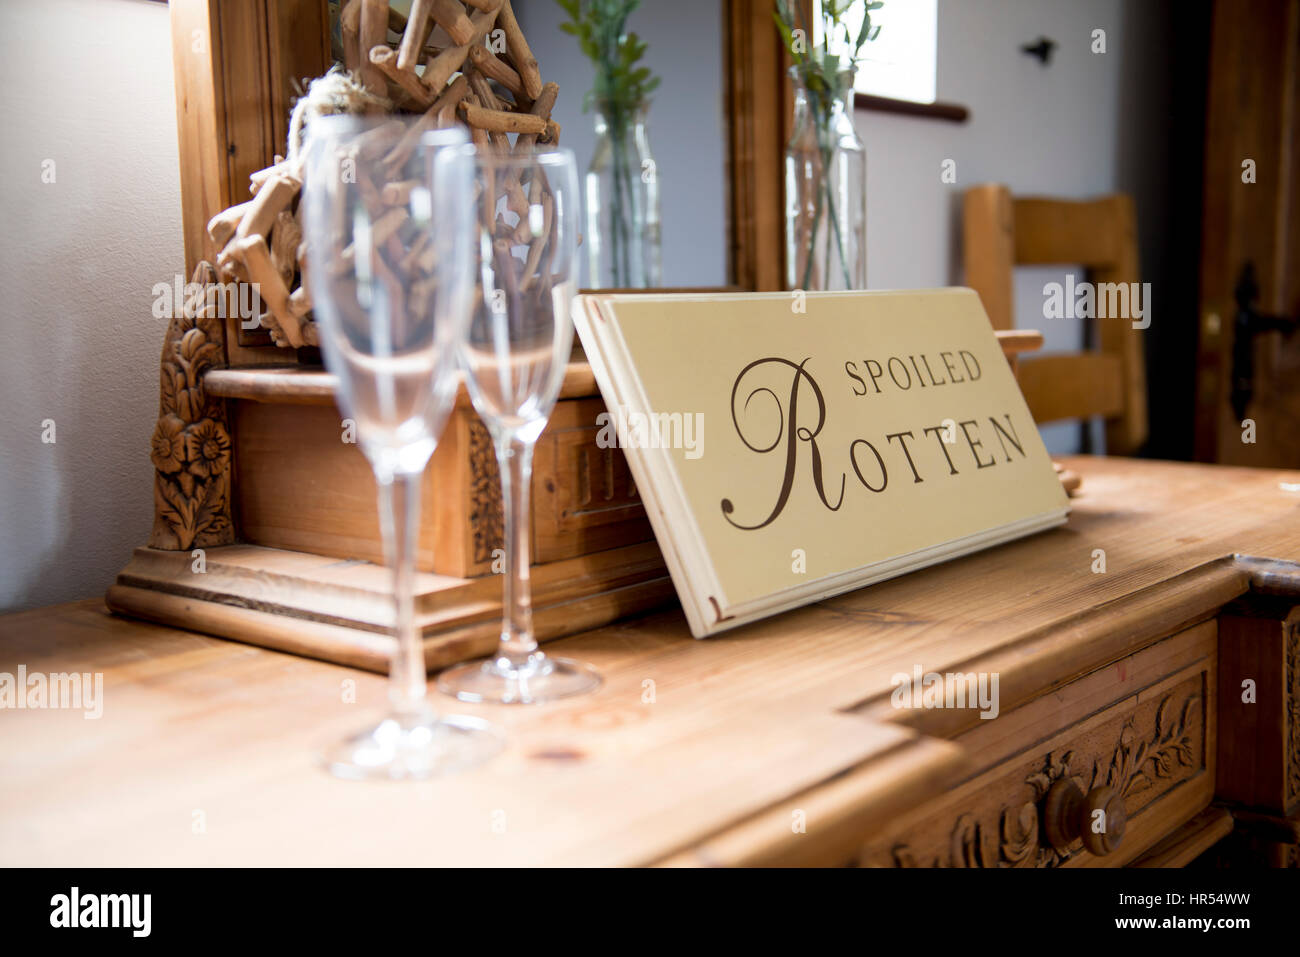 Spoiled Rotten - Stock Image